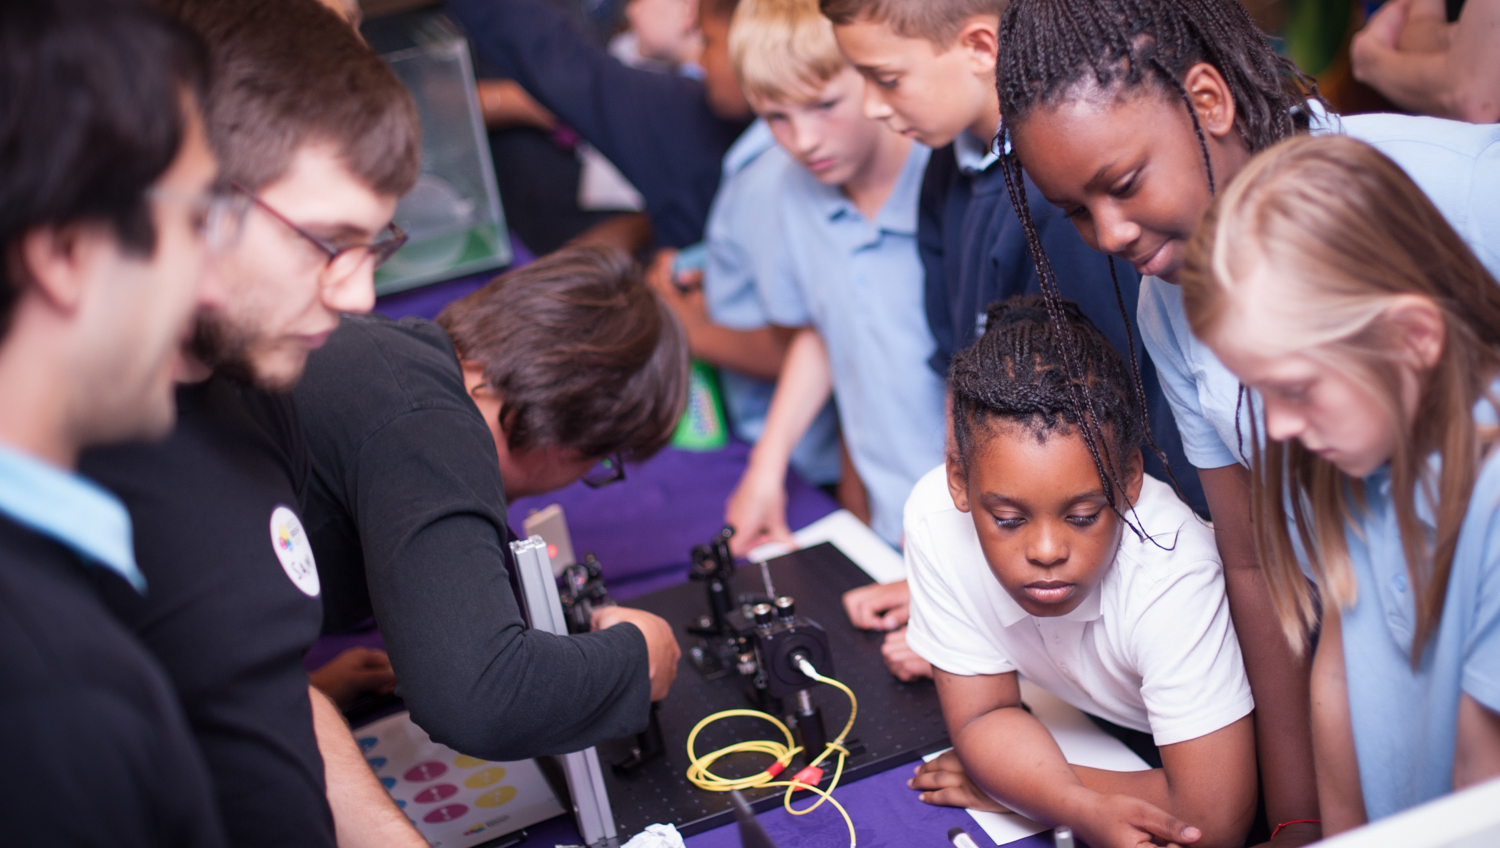 School children enjoying a science fair. They are hunched over watching intently an electronic experiment hosted by three adults.